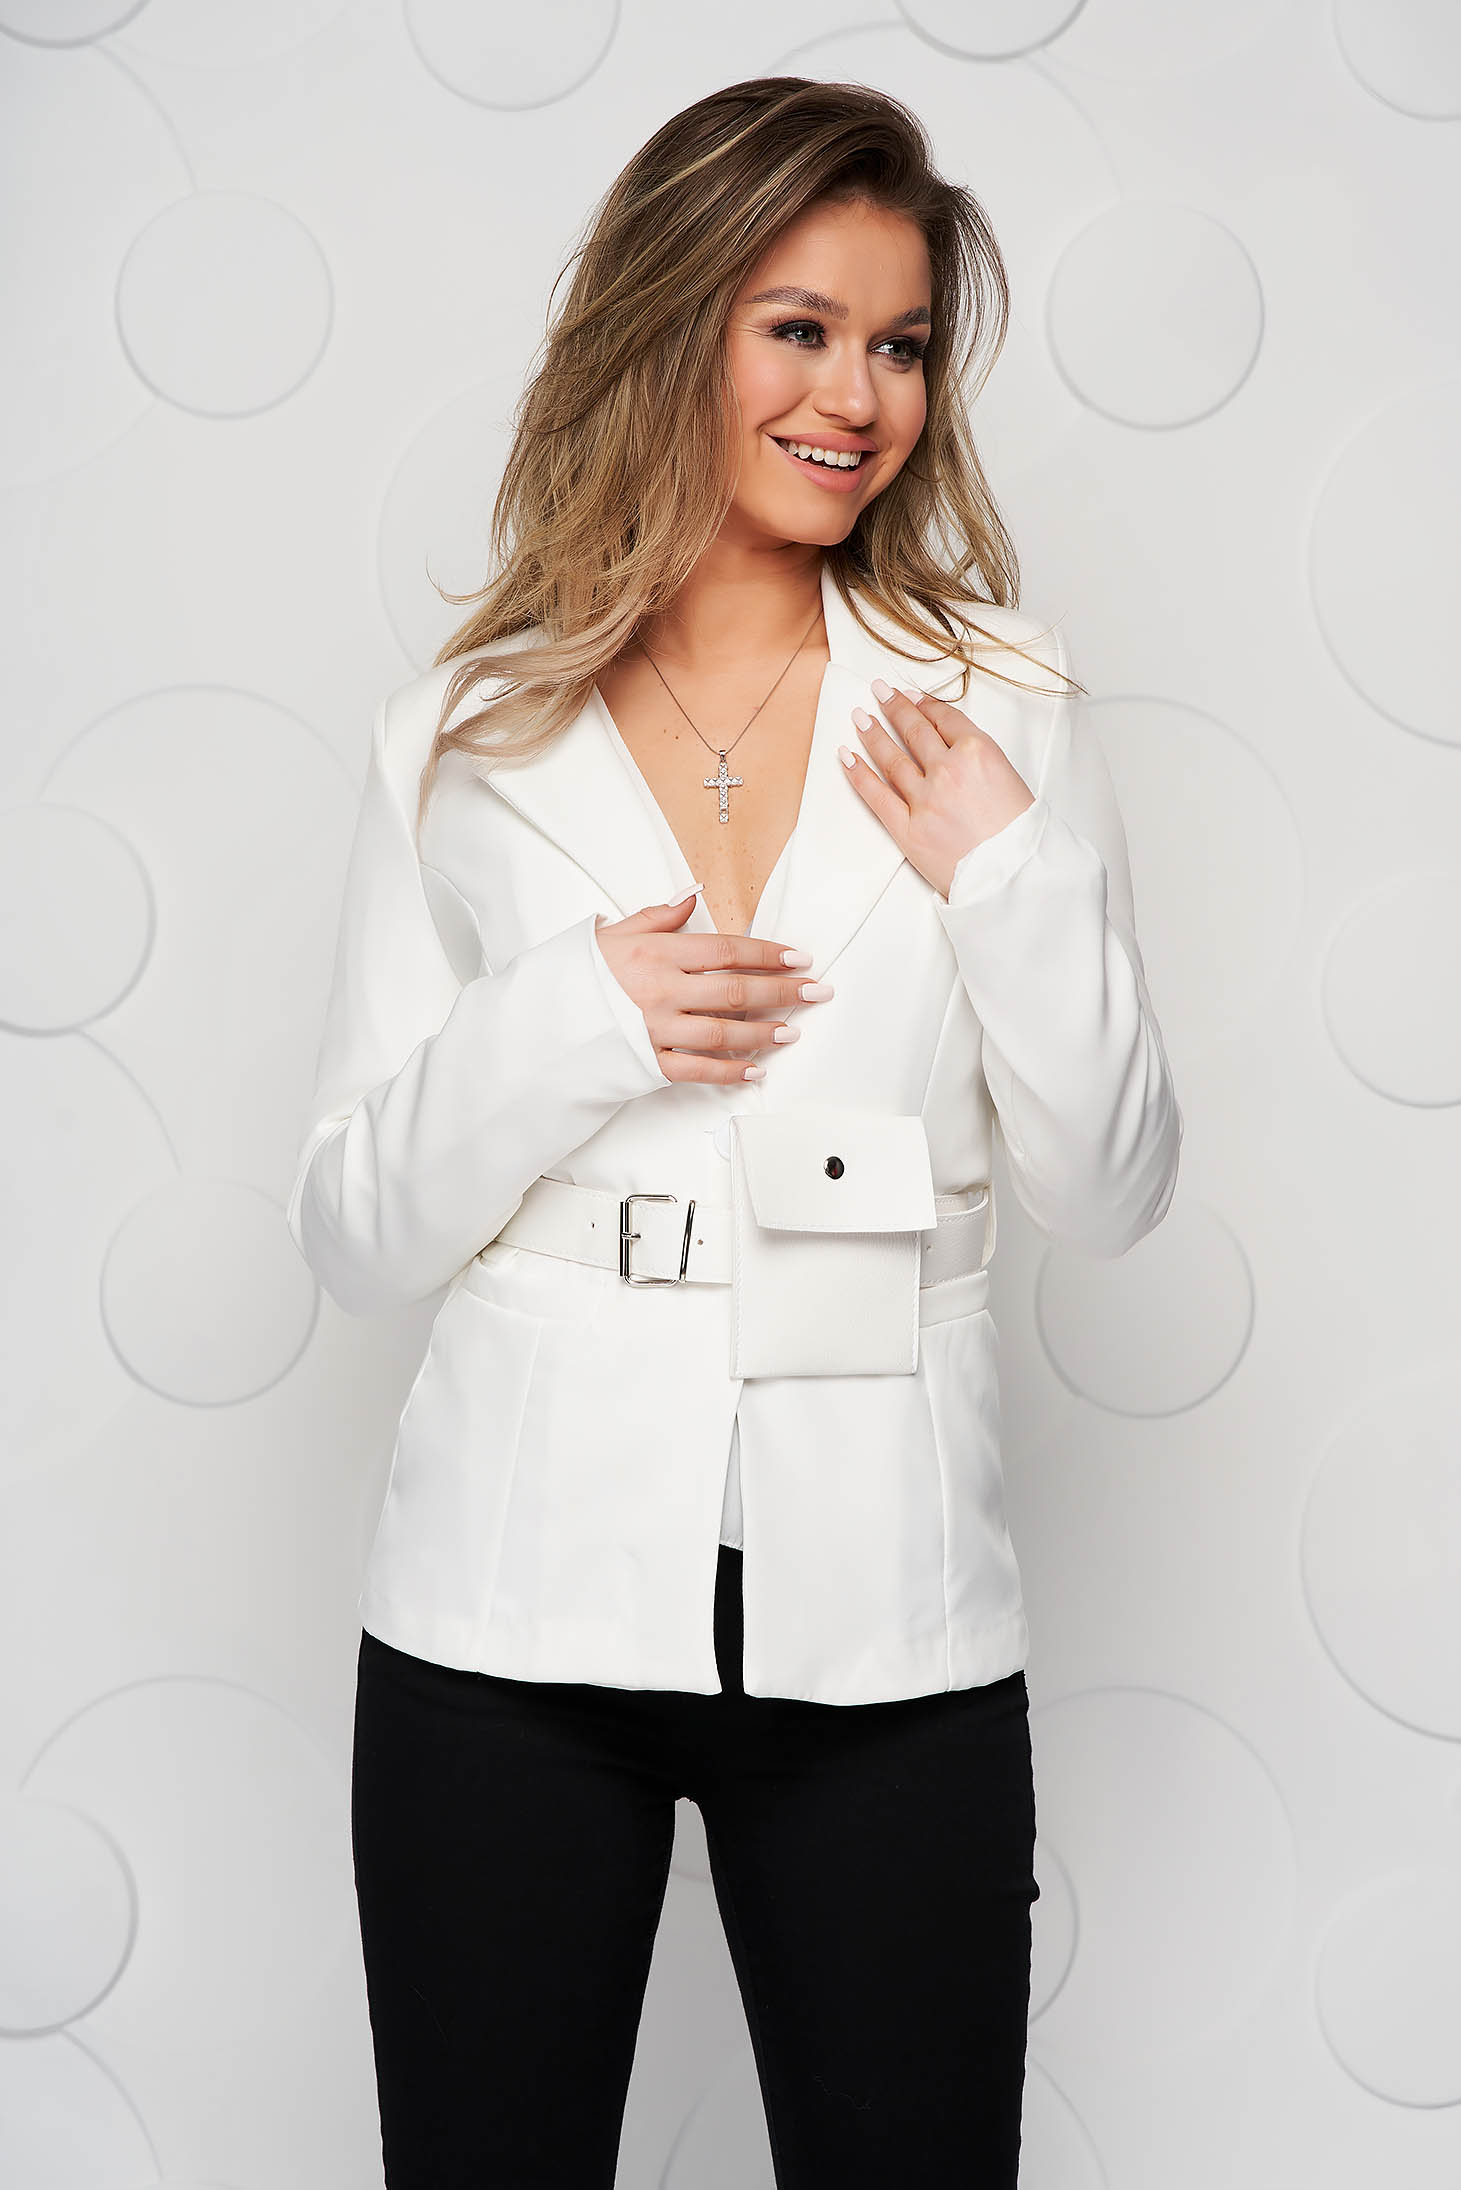 White jacket tented accessorized with belt purse